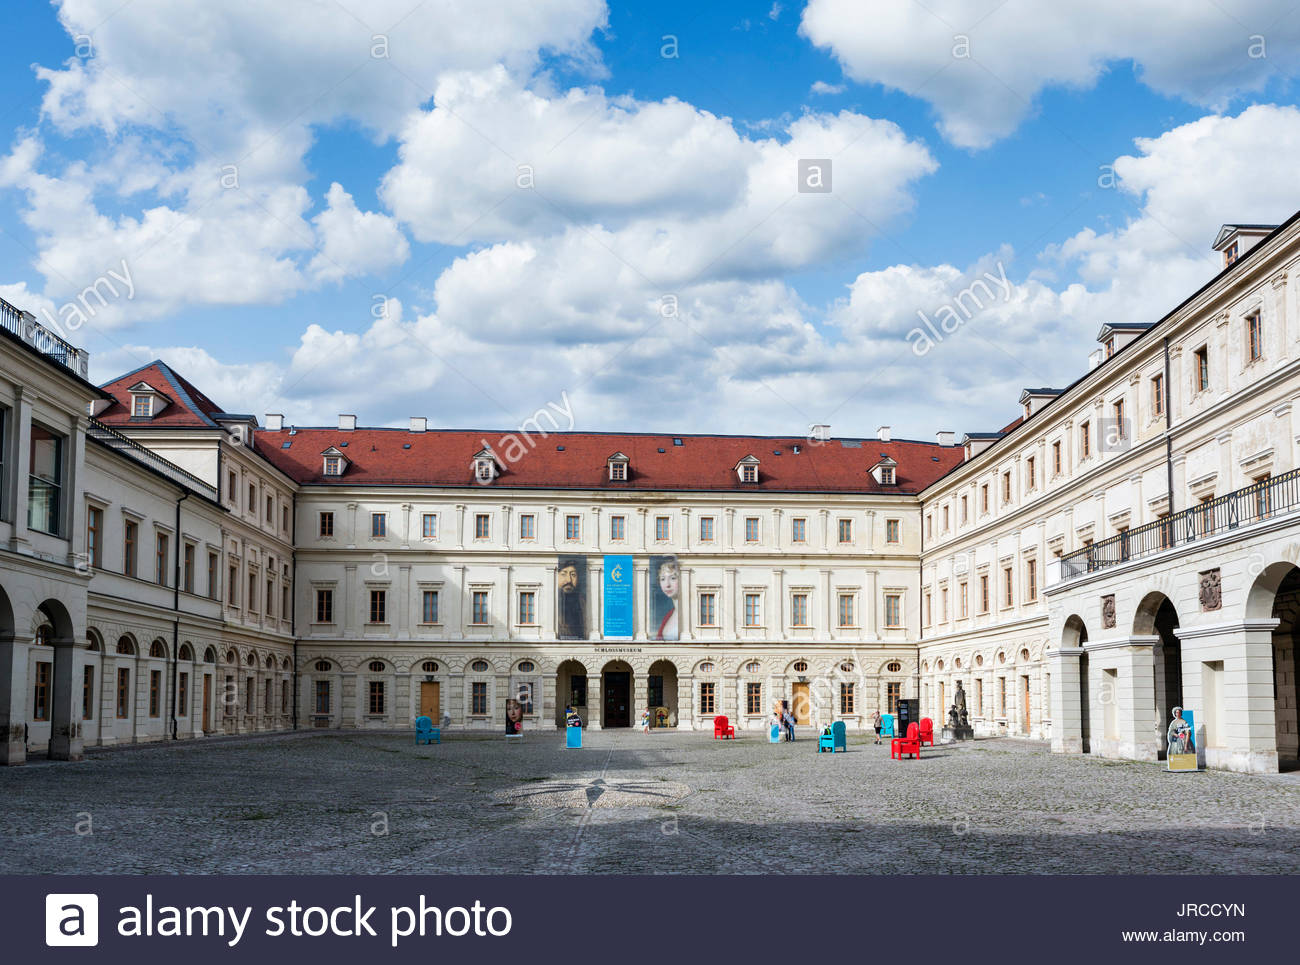 Neues Museum Weimar Saxony, Saxony-Anhalt and Thuringia, New German Museums Stock Photos & New German Museums Stock Images ...